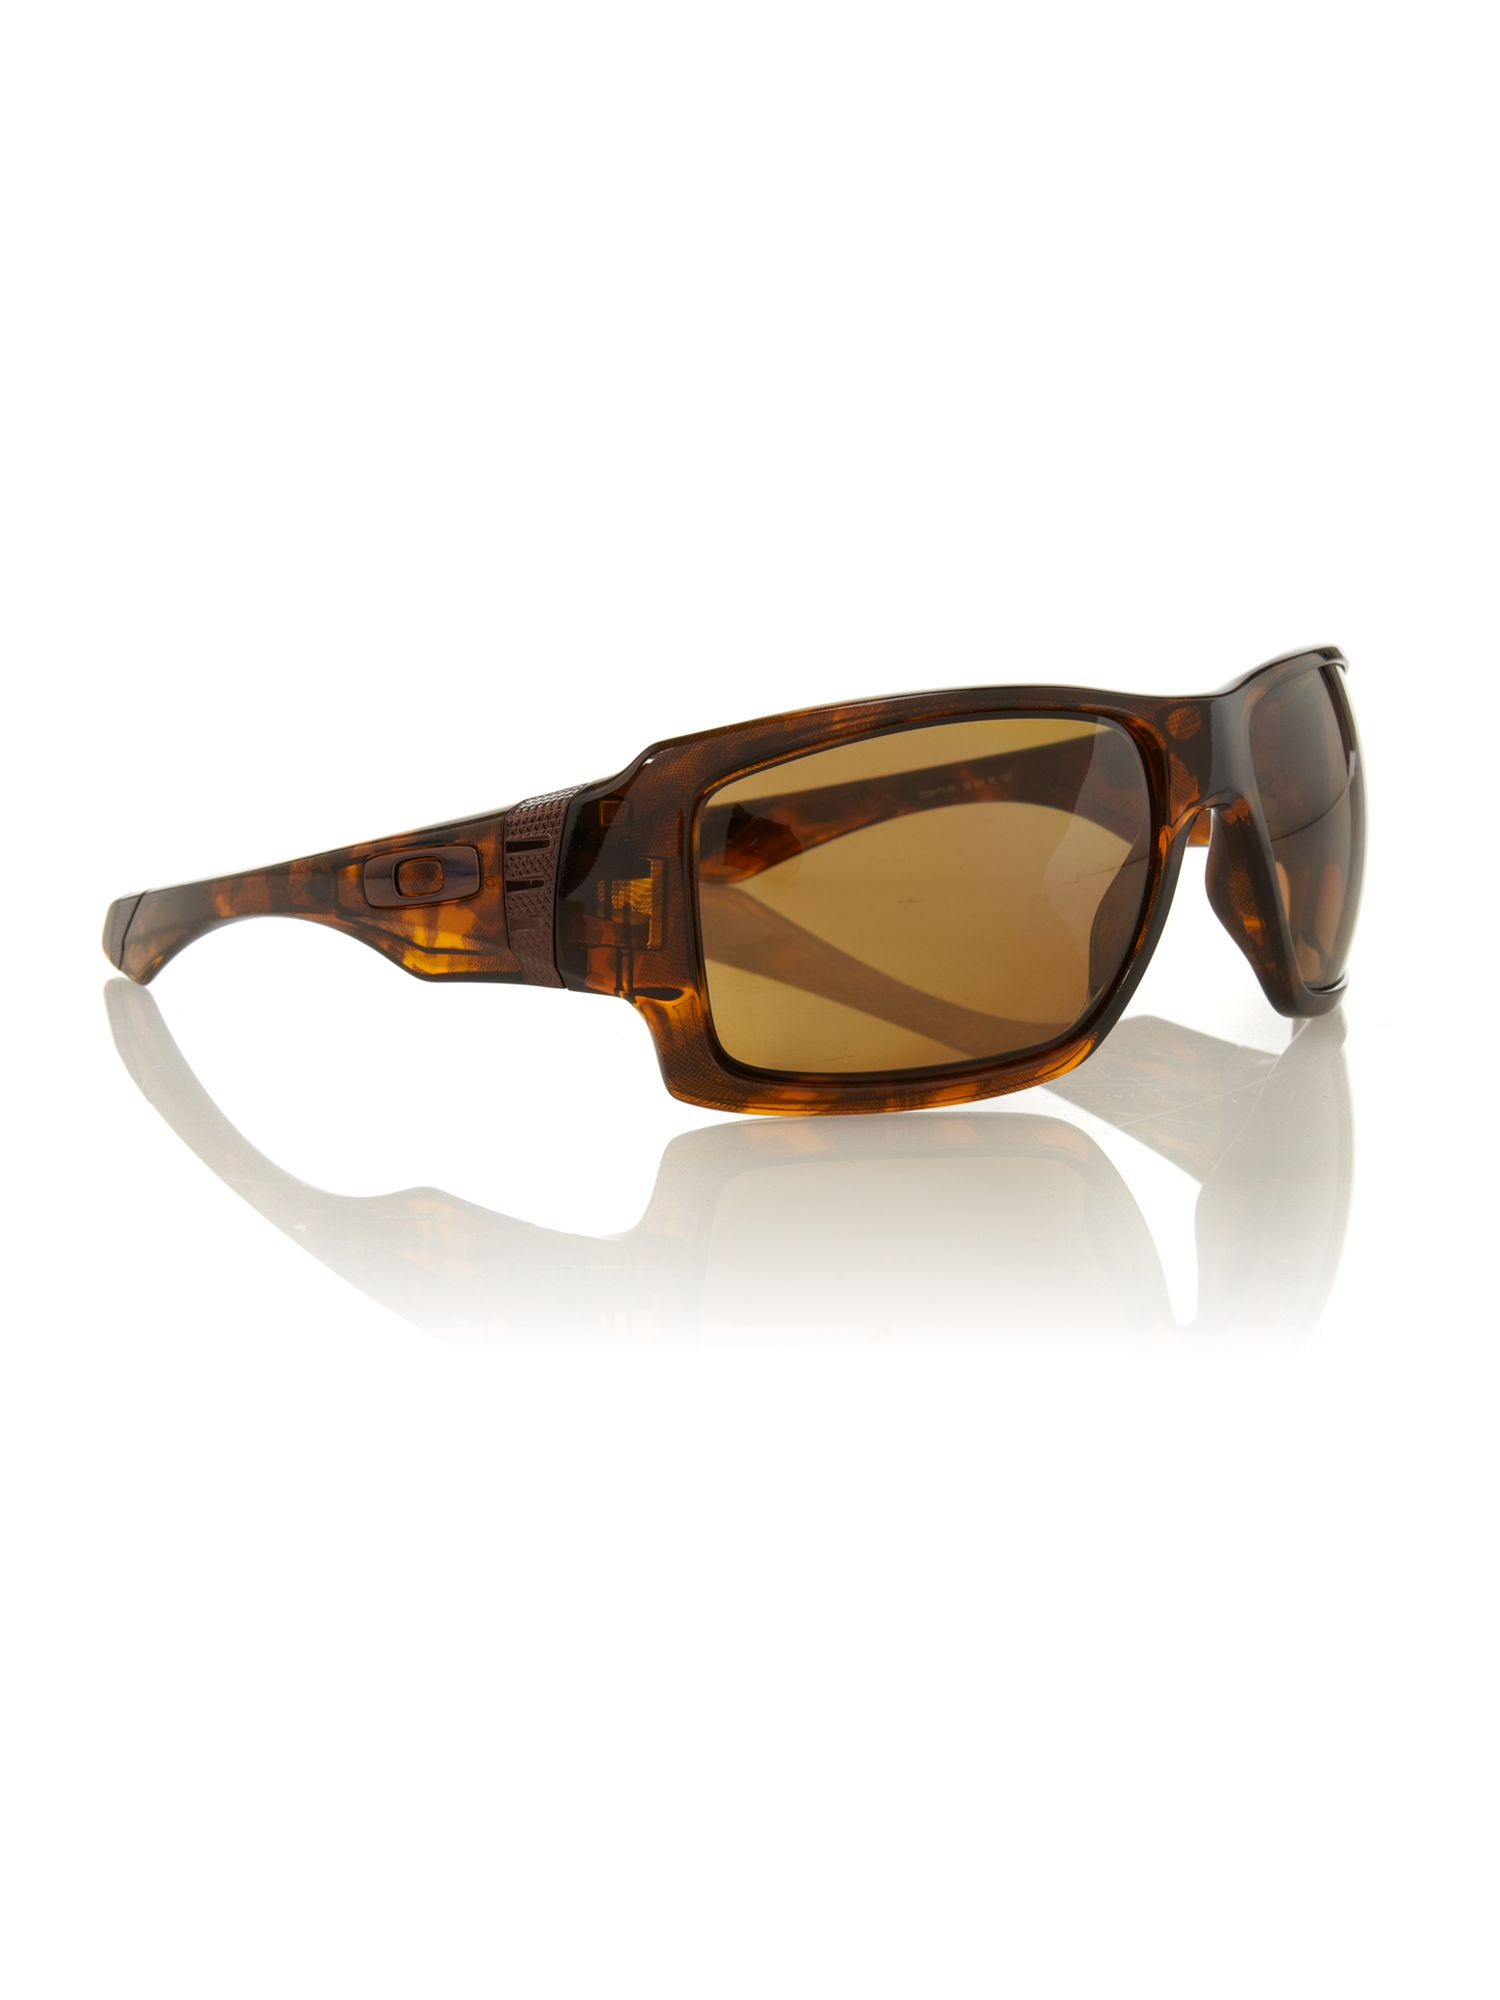 Oakely men`s OO9173 brown sqaure sunglasses